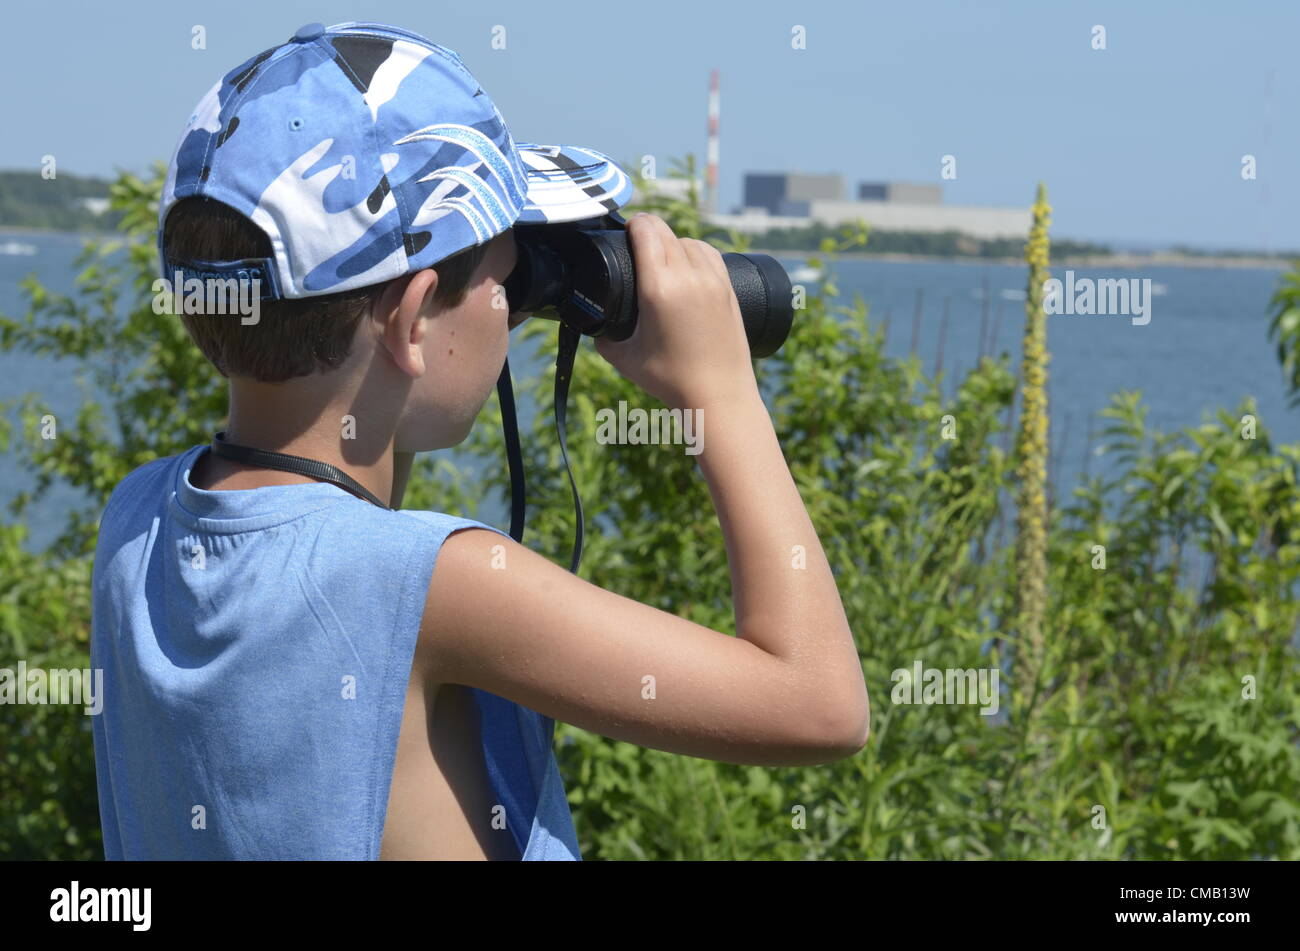 young-explorer-niantic-connecticut-usa-july-6-2012-from-a-high-vantage-CMB13W.jpg